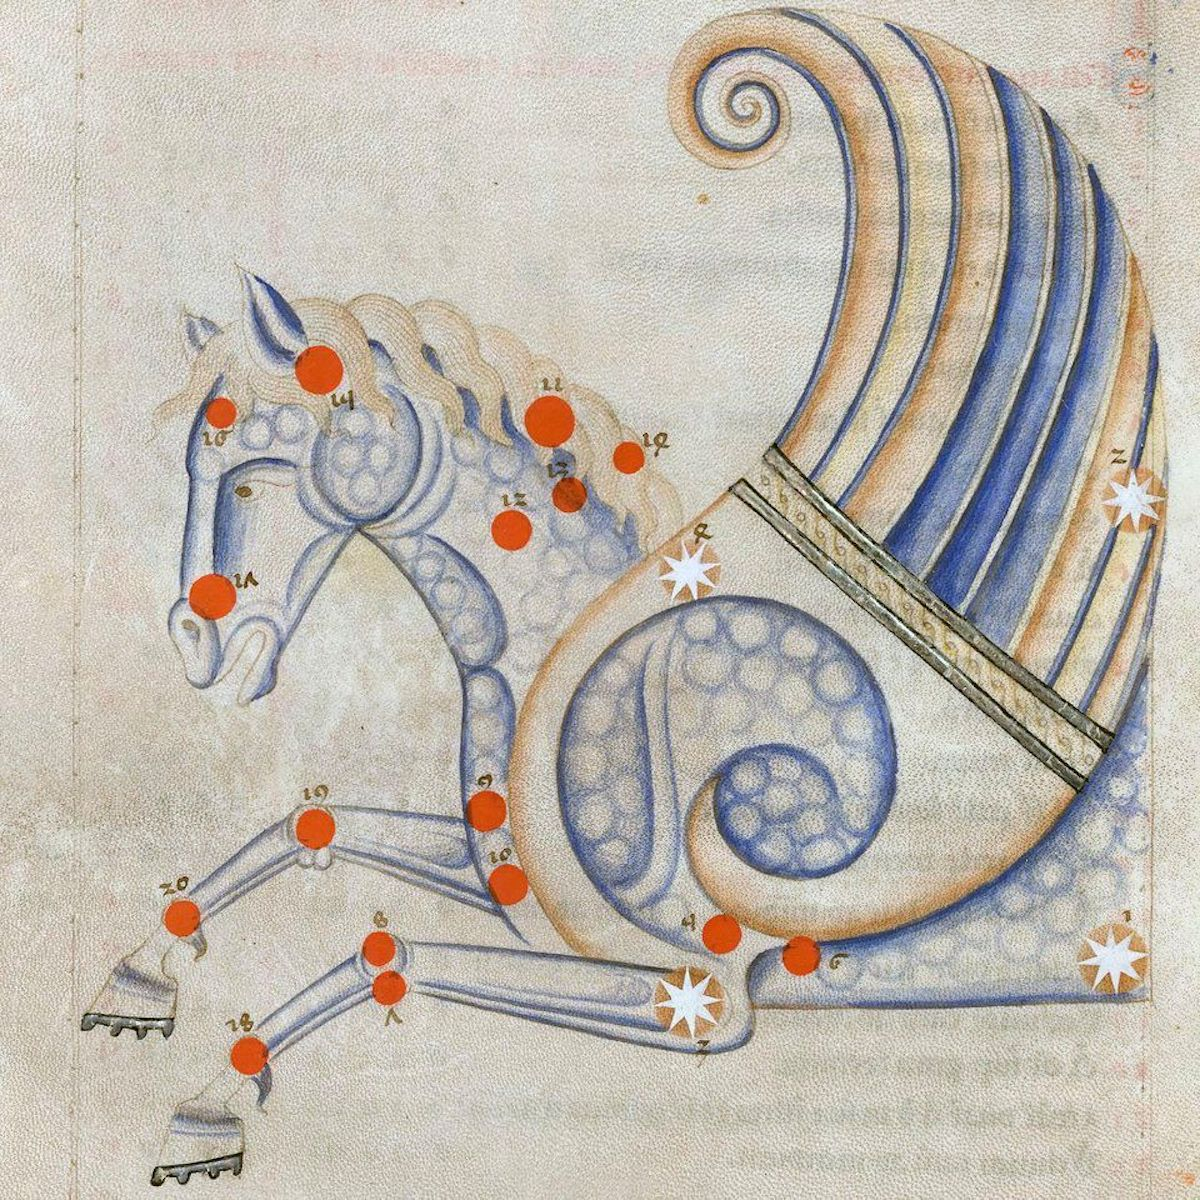 advent 16 Constellation of Pegasus from Sufi Latinus (Latin translation of 'Kitāb al-kawākib al-thābita' of 'Abd al-Rahmān al-Ṣūfī), Bologna 1250-1275 BnF, Arsenal 1036